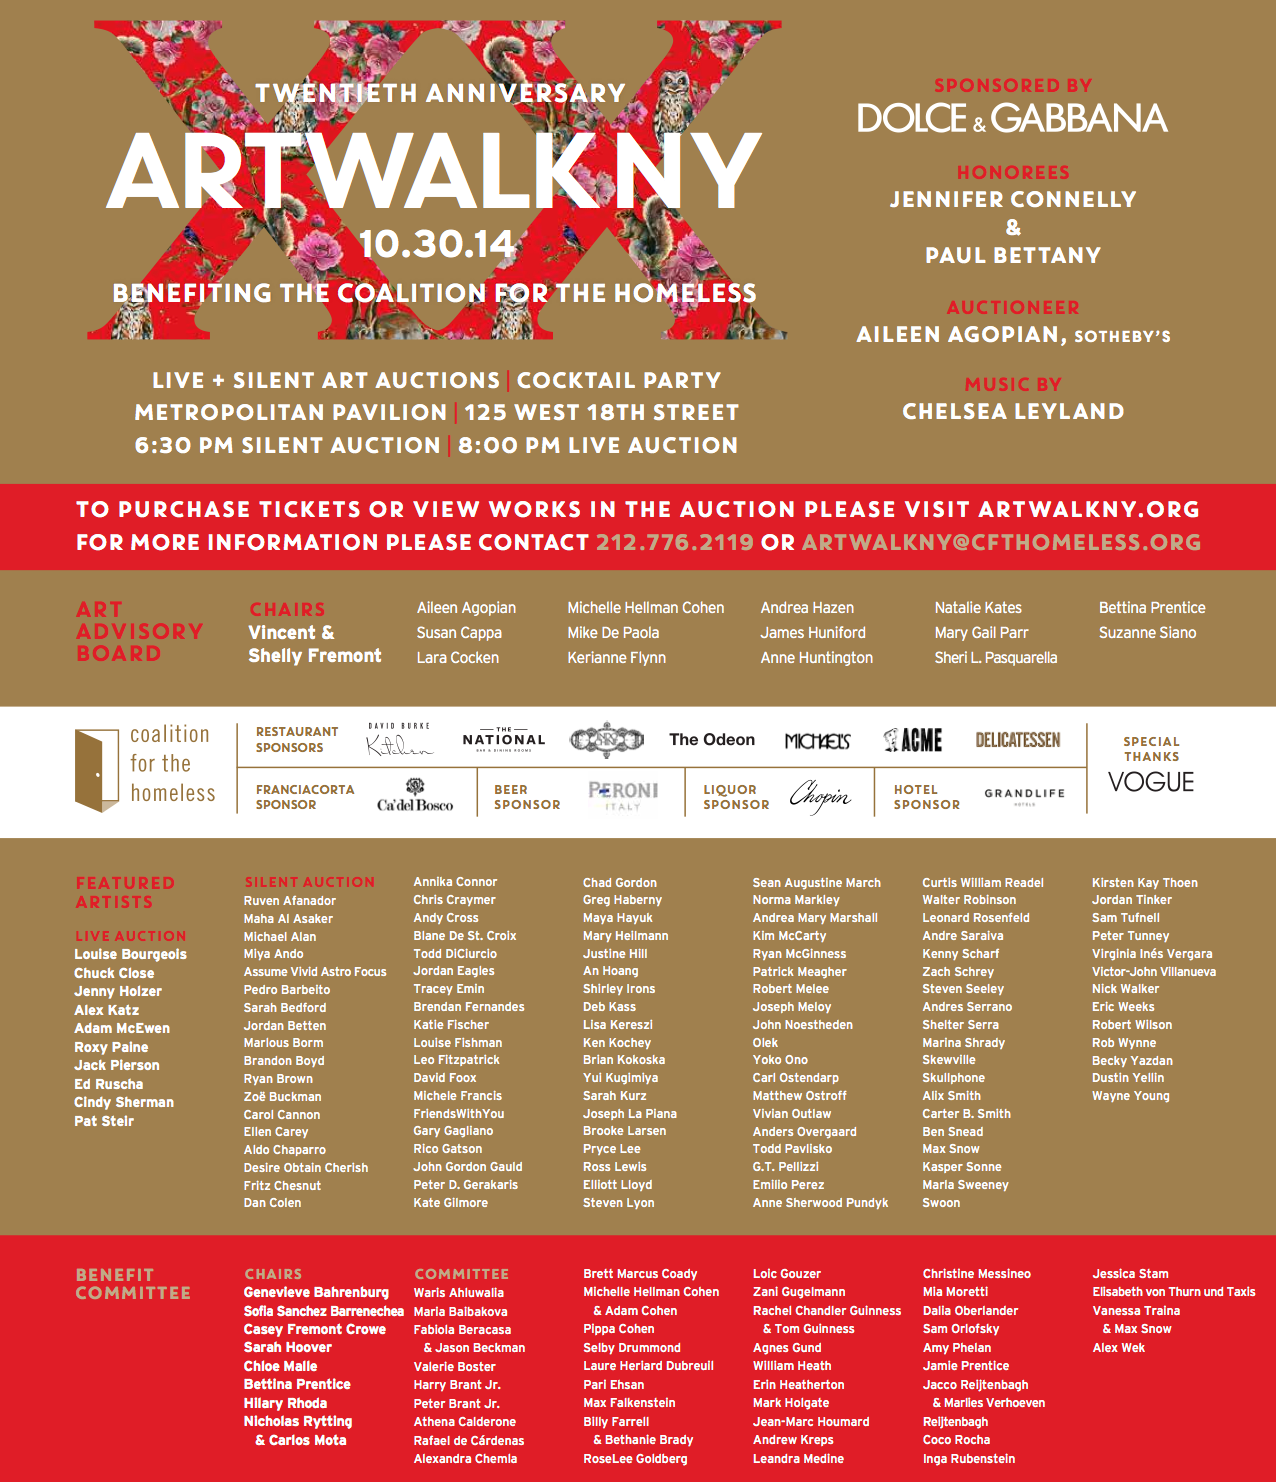 ARTWALKNY 20TH ANNIVERSARY